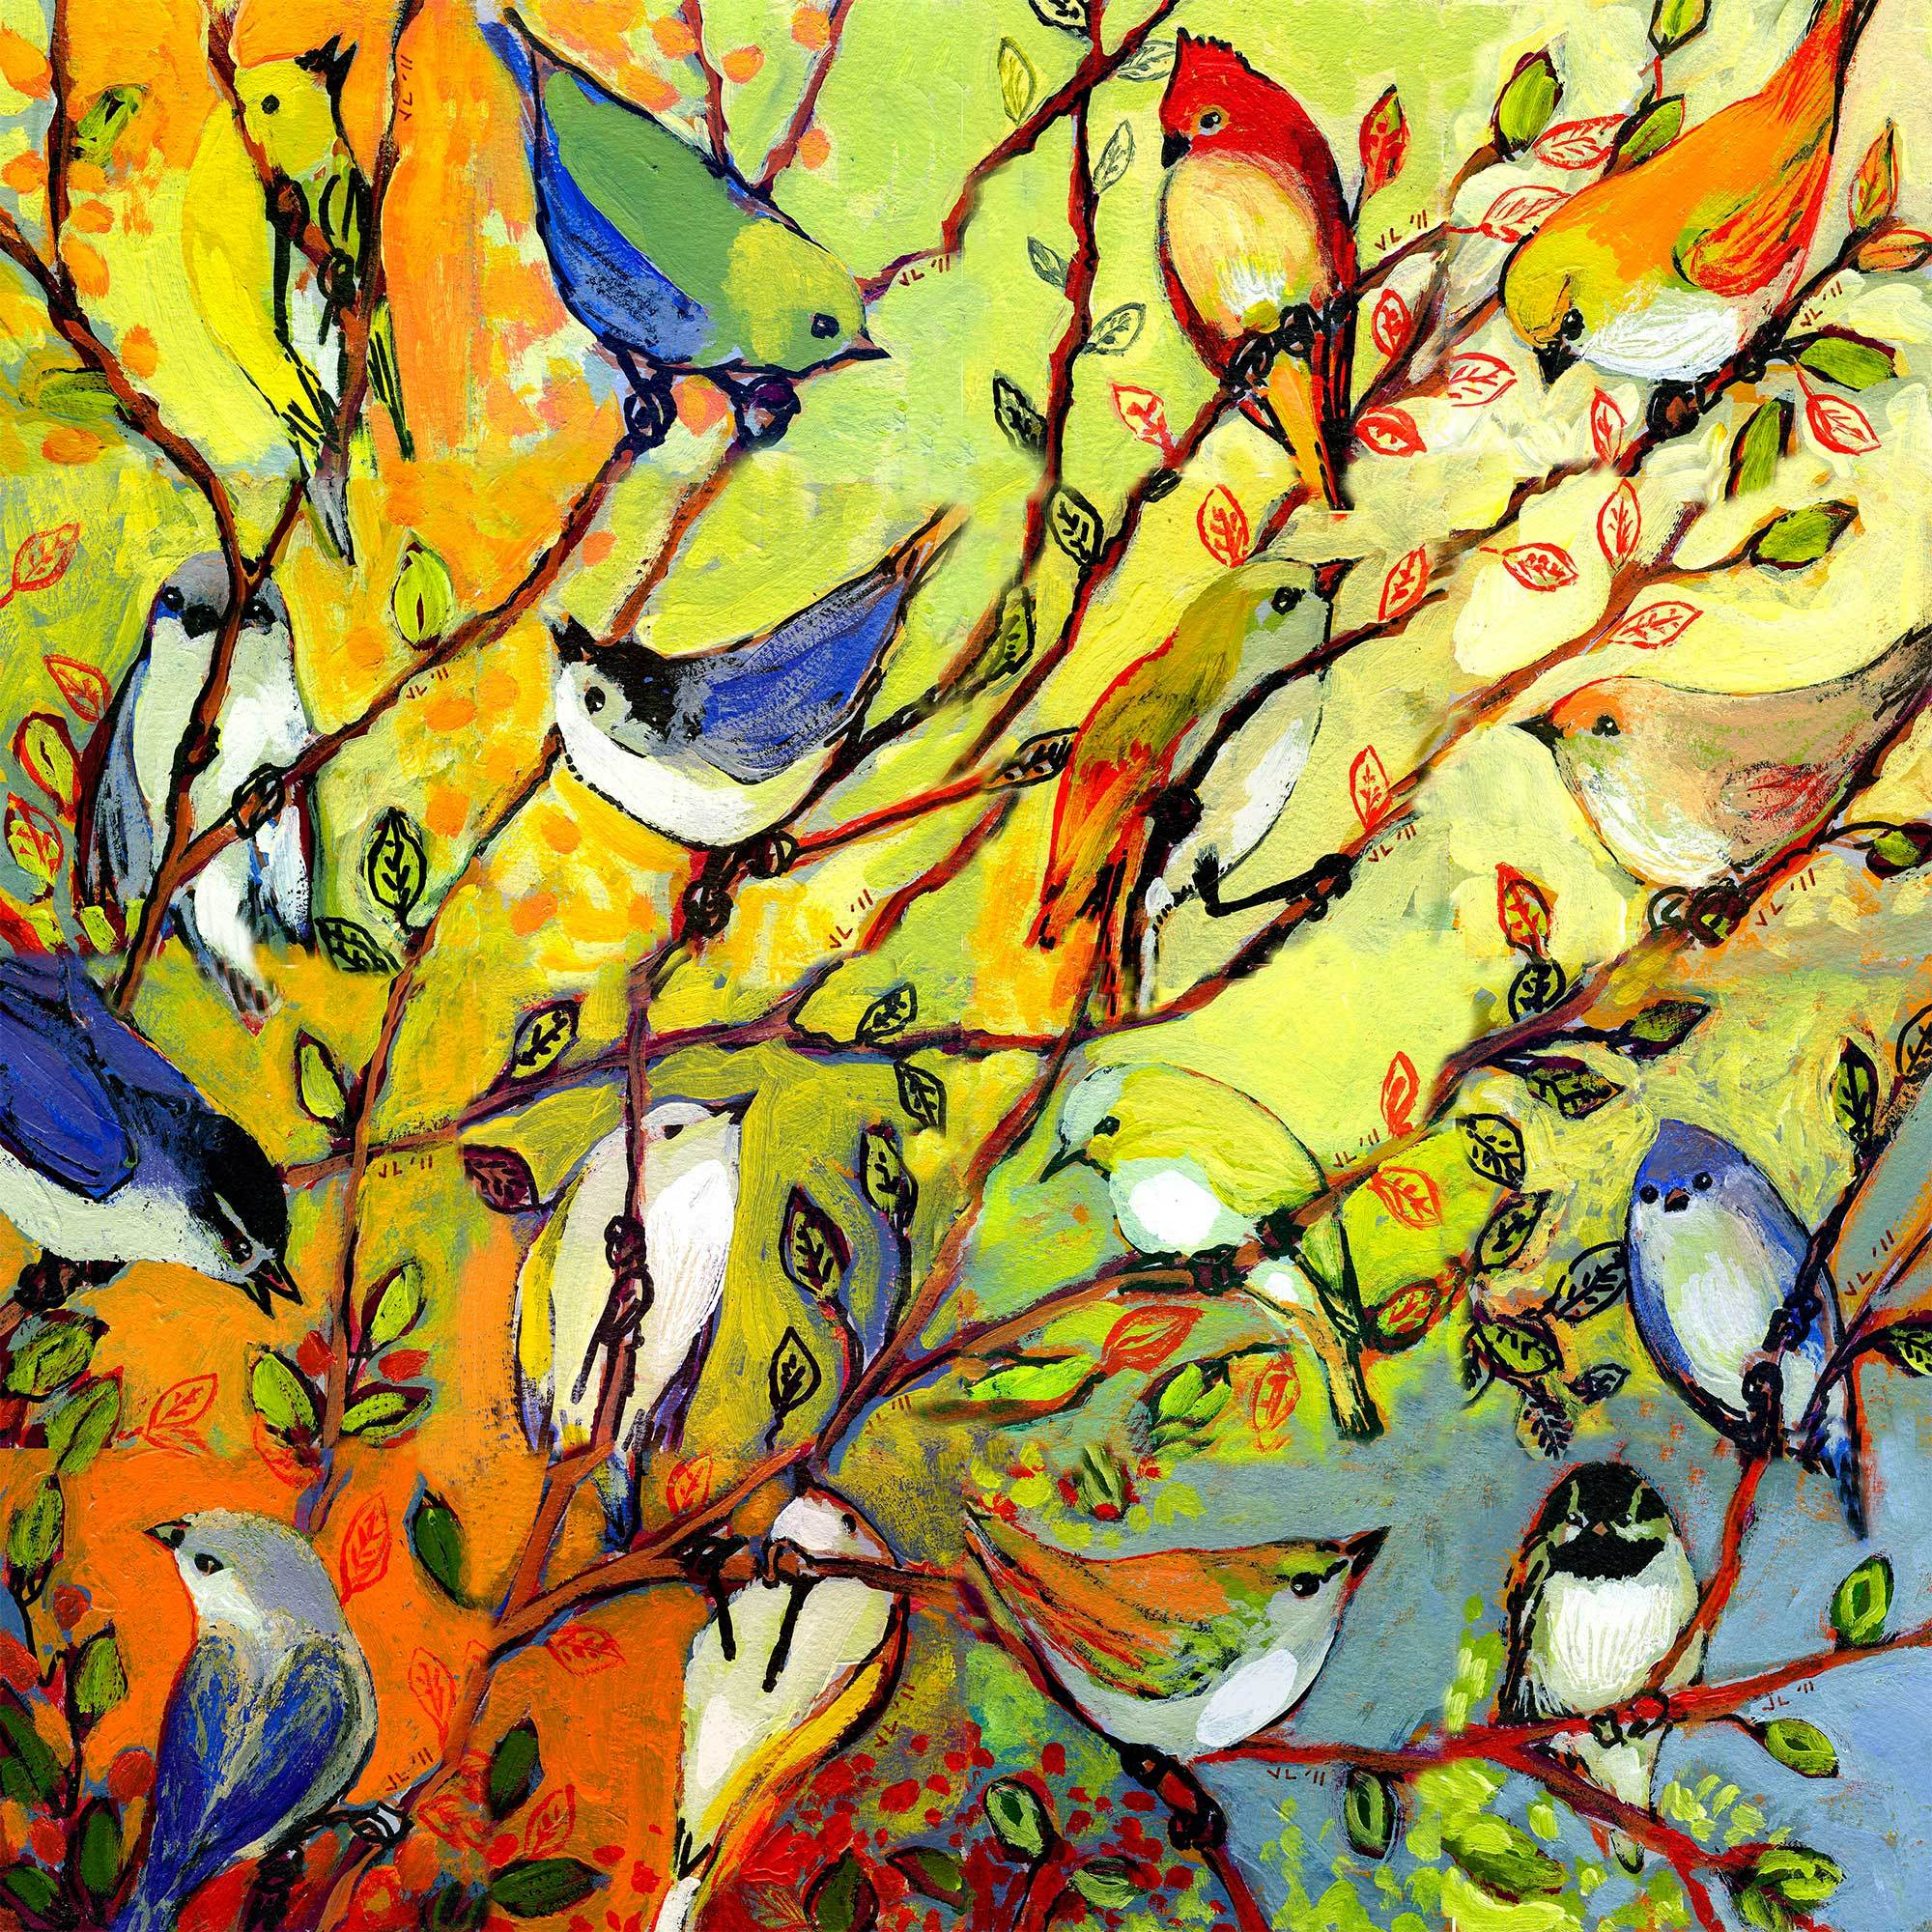 Birds of a feather outdoor wall art piece by West of the Wind ...